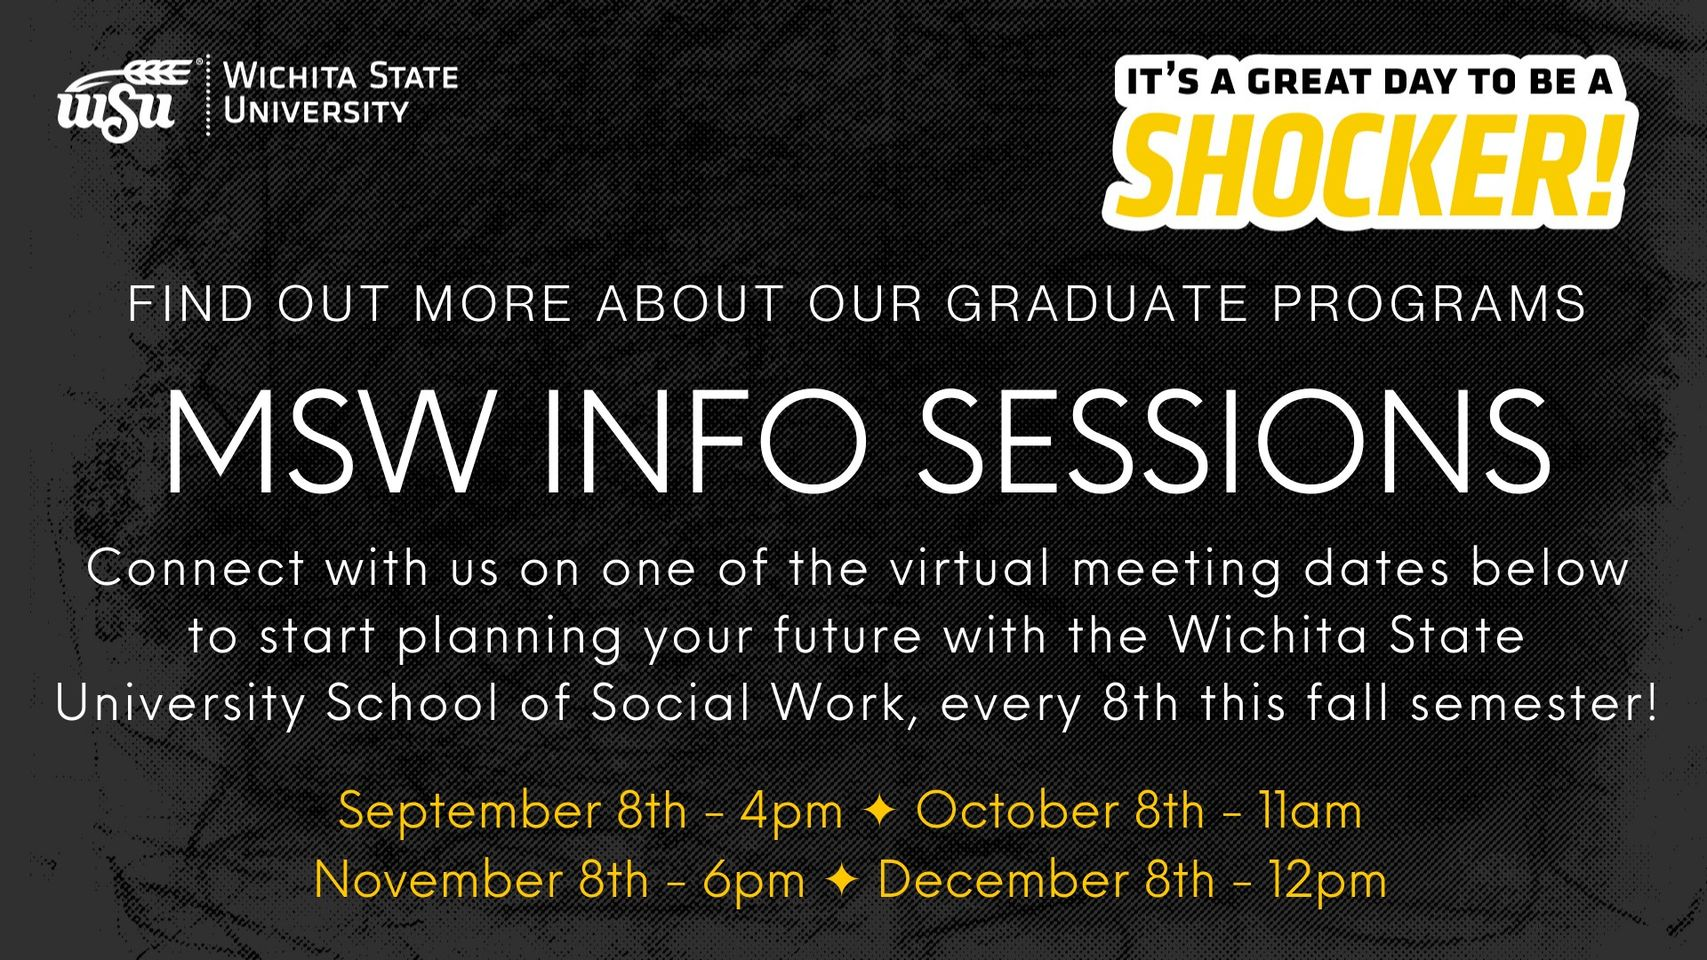 Find out more about our graduate programs at one of our 4 upcoming info sessions! 9/8 at 4p, 10/8 at 11a, 11/8 at 6p, 12/8 at 12p